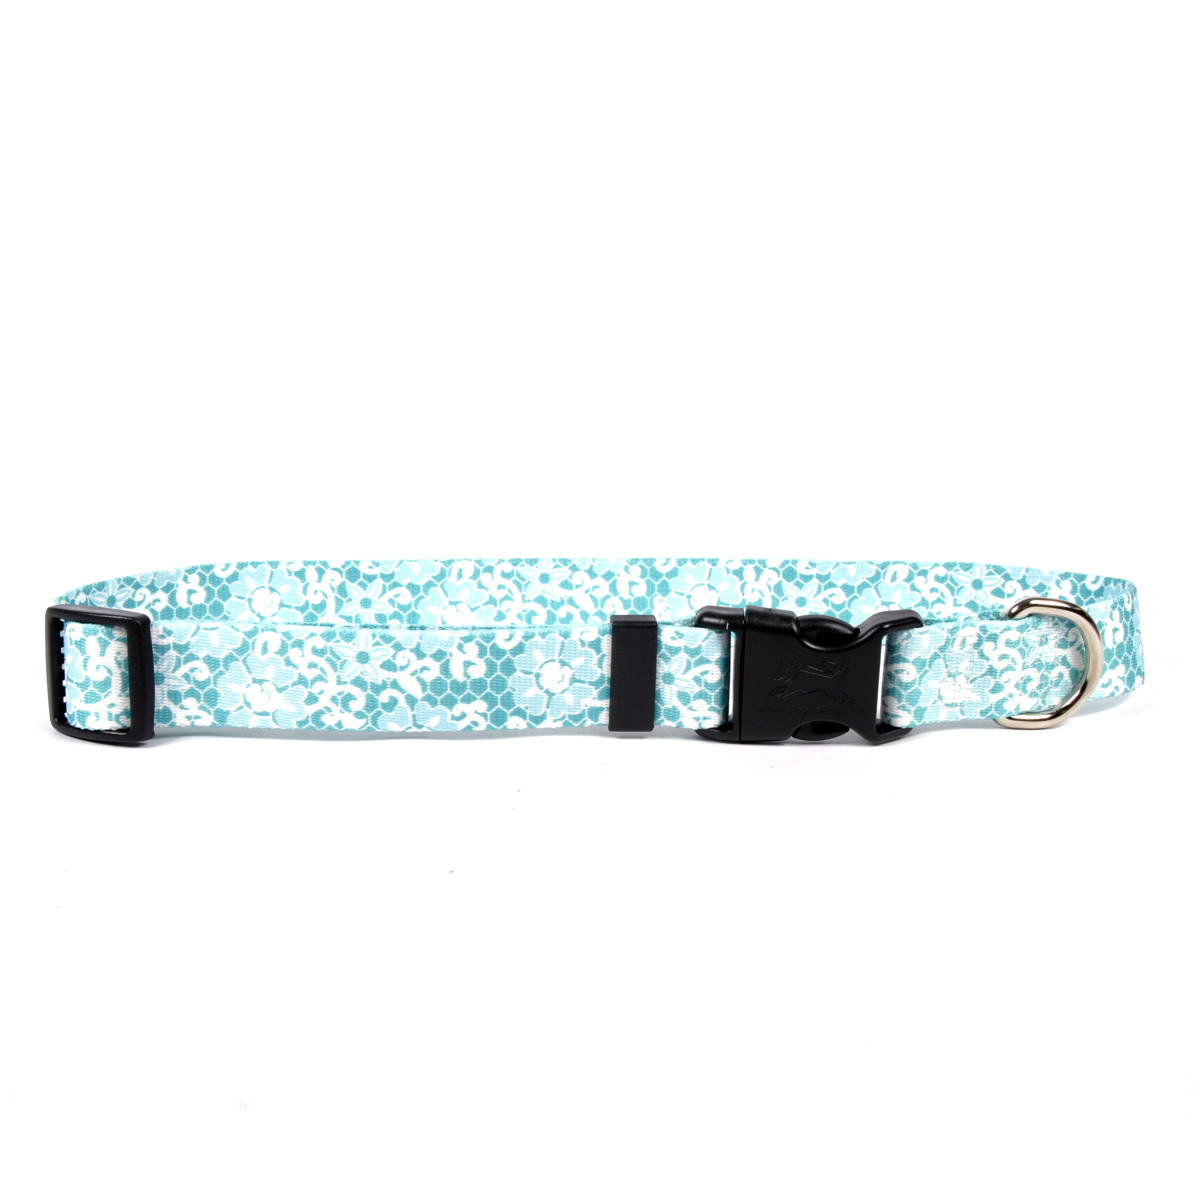 Yellow Dog Teal Lace Flowers Dog Collar with Tag-A-Long